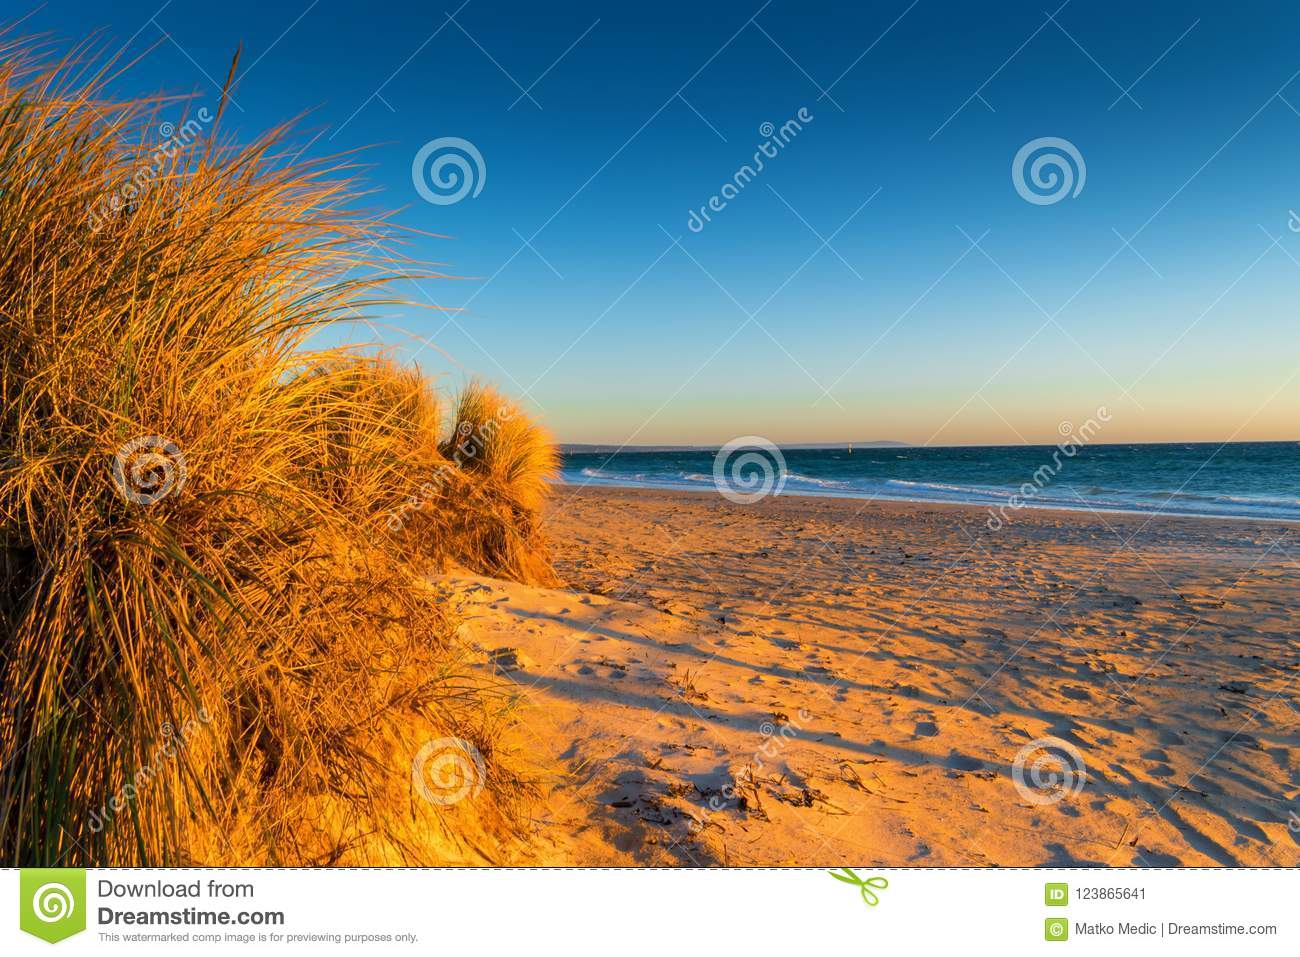 Grass and beach at sunset